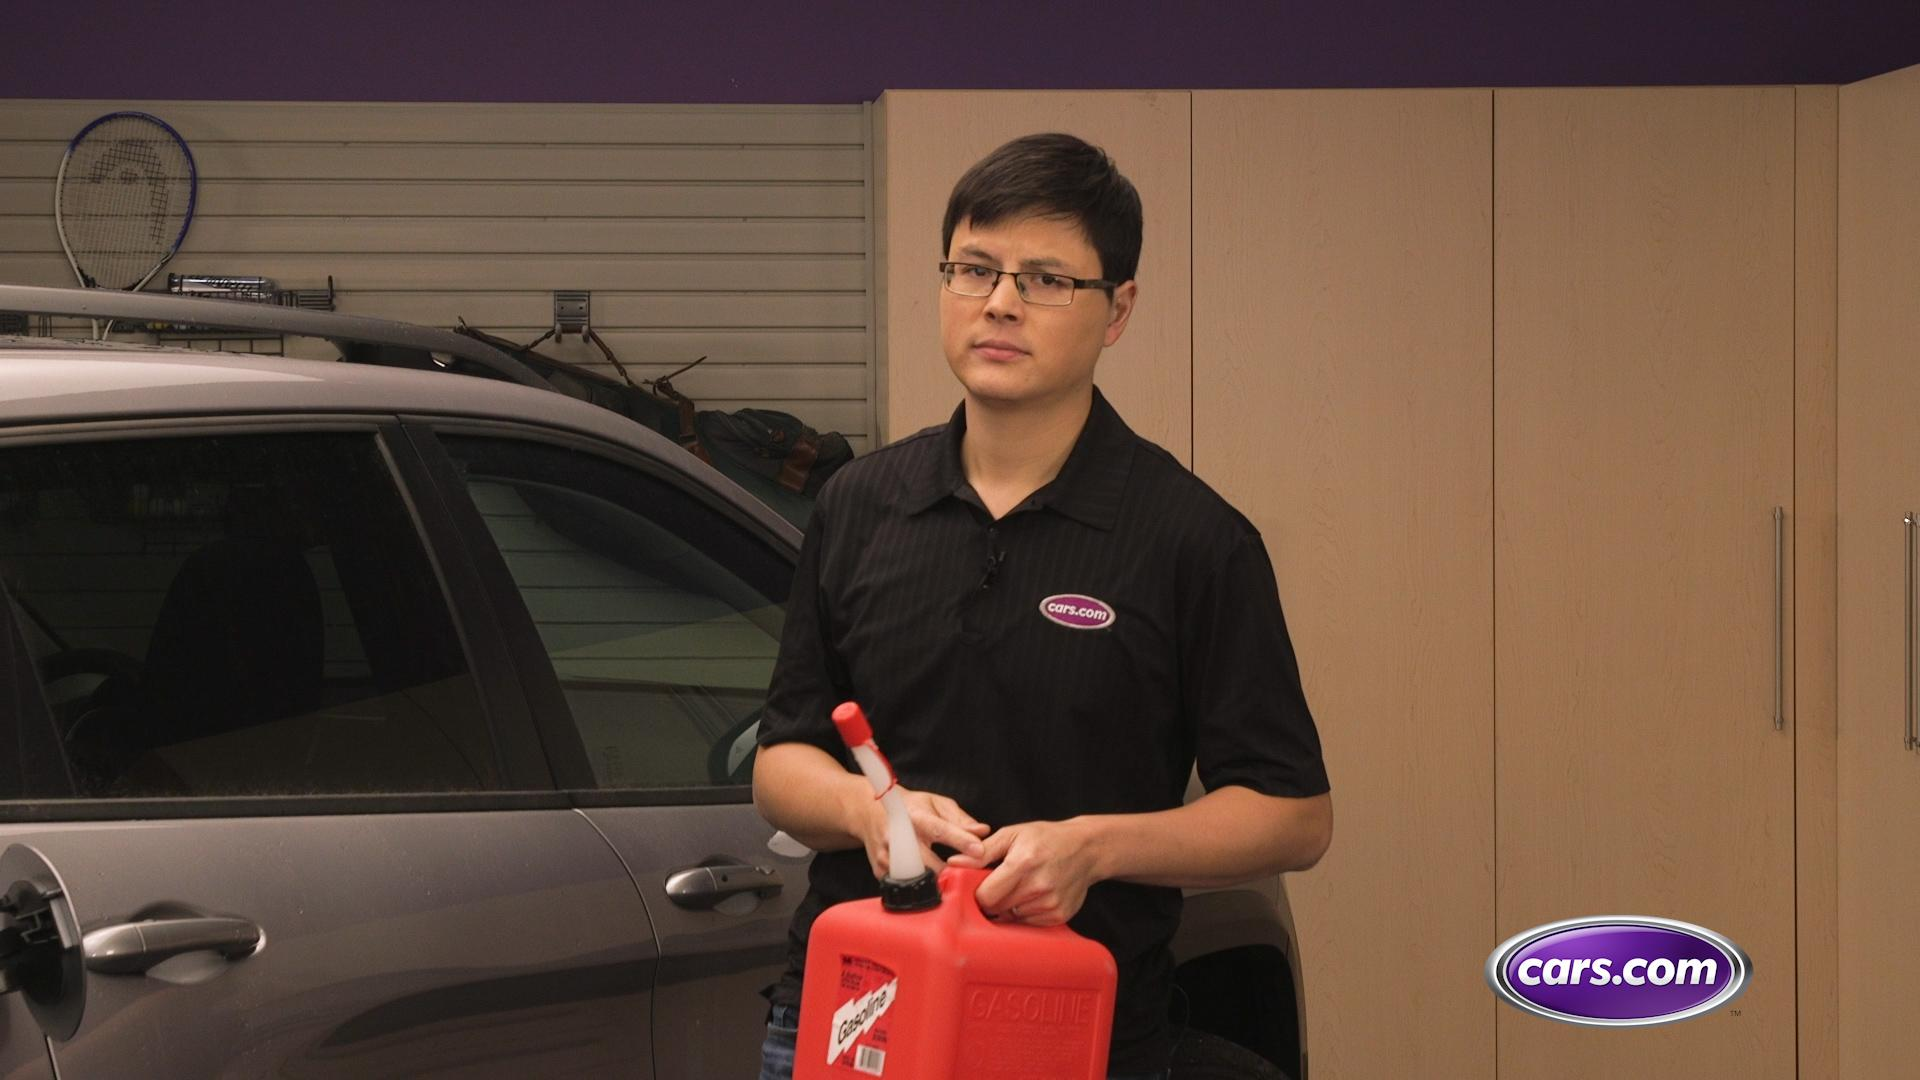 Video: 3 Simple Rules for Saving Fuel